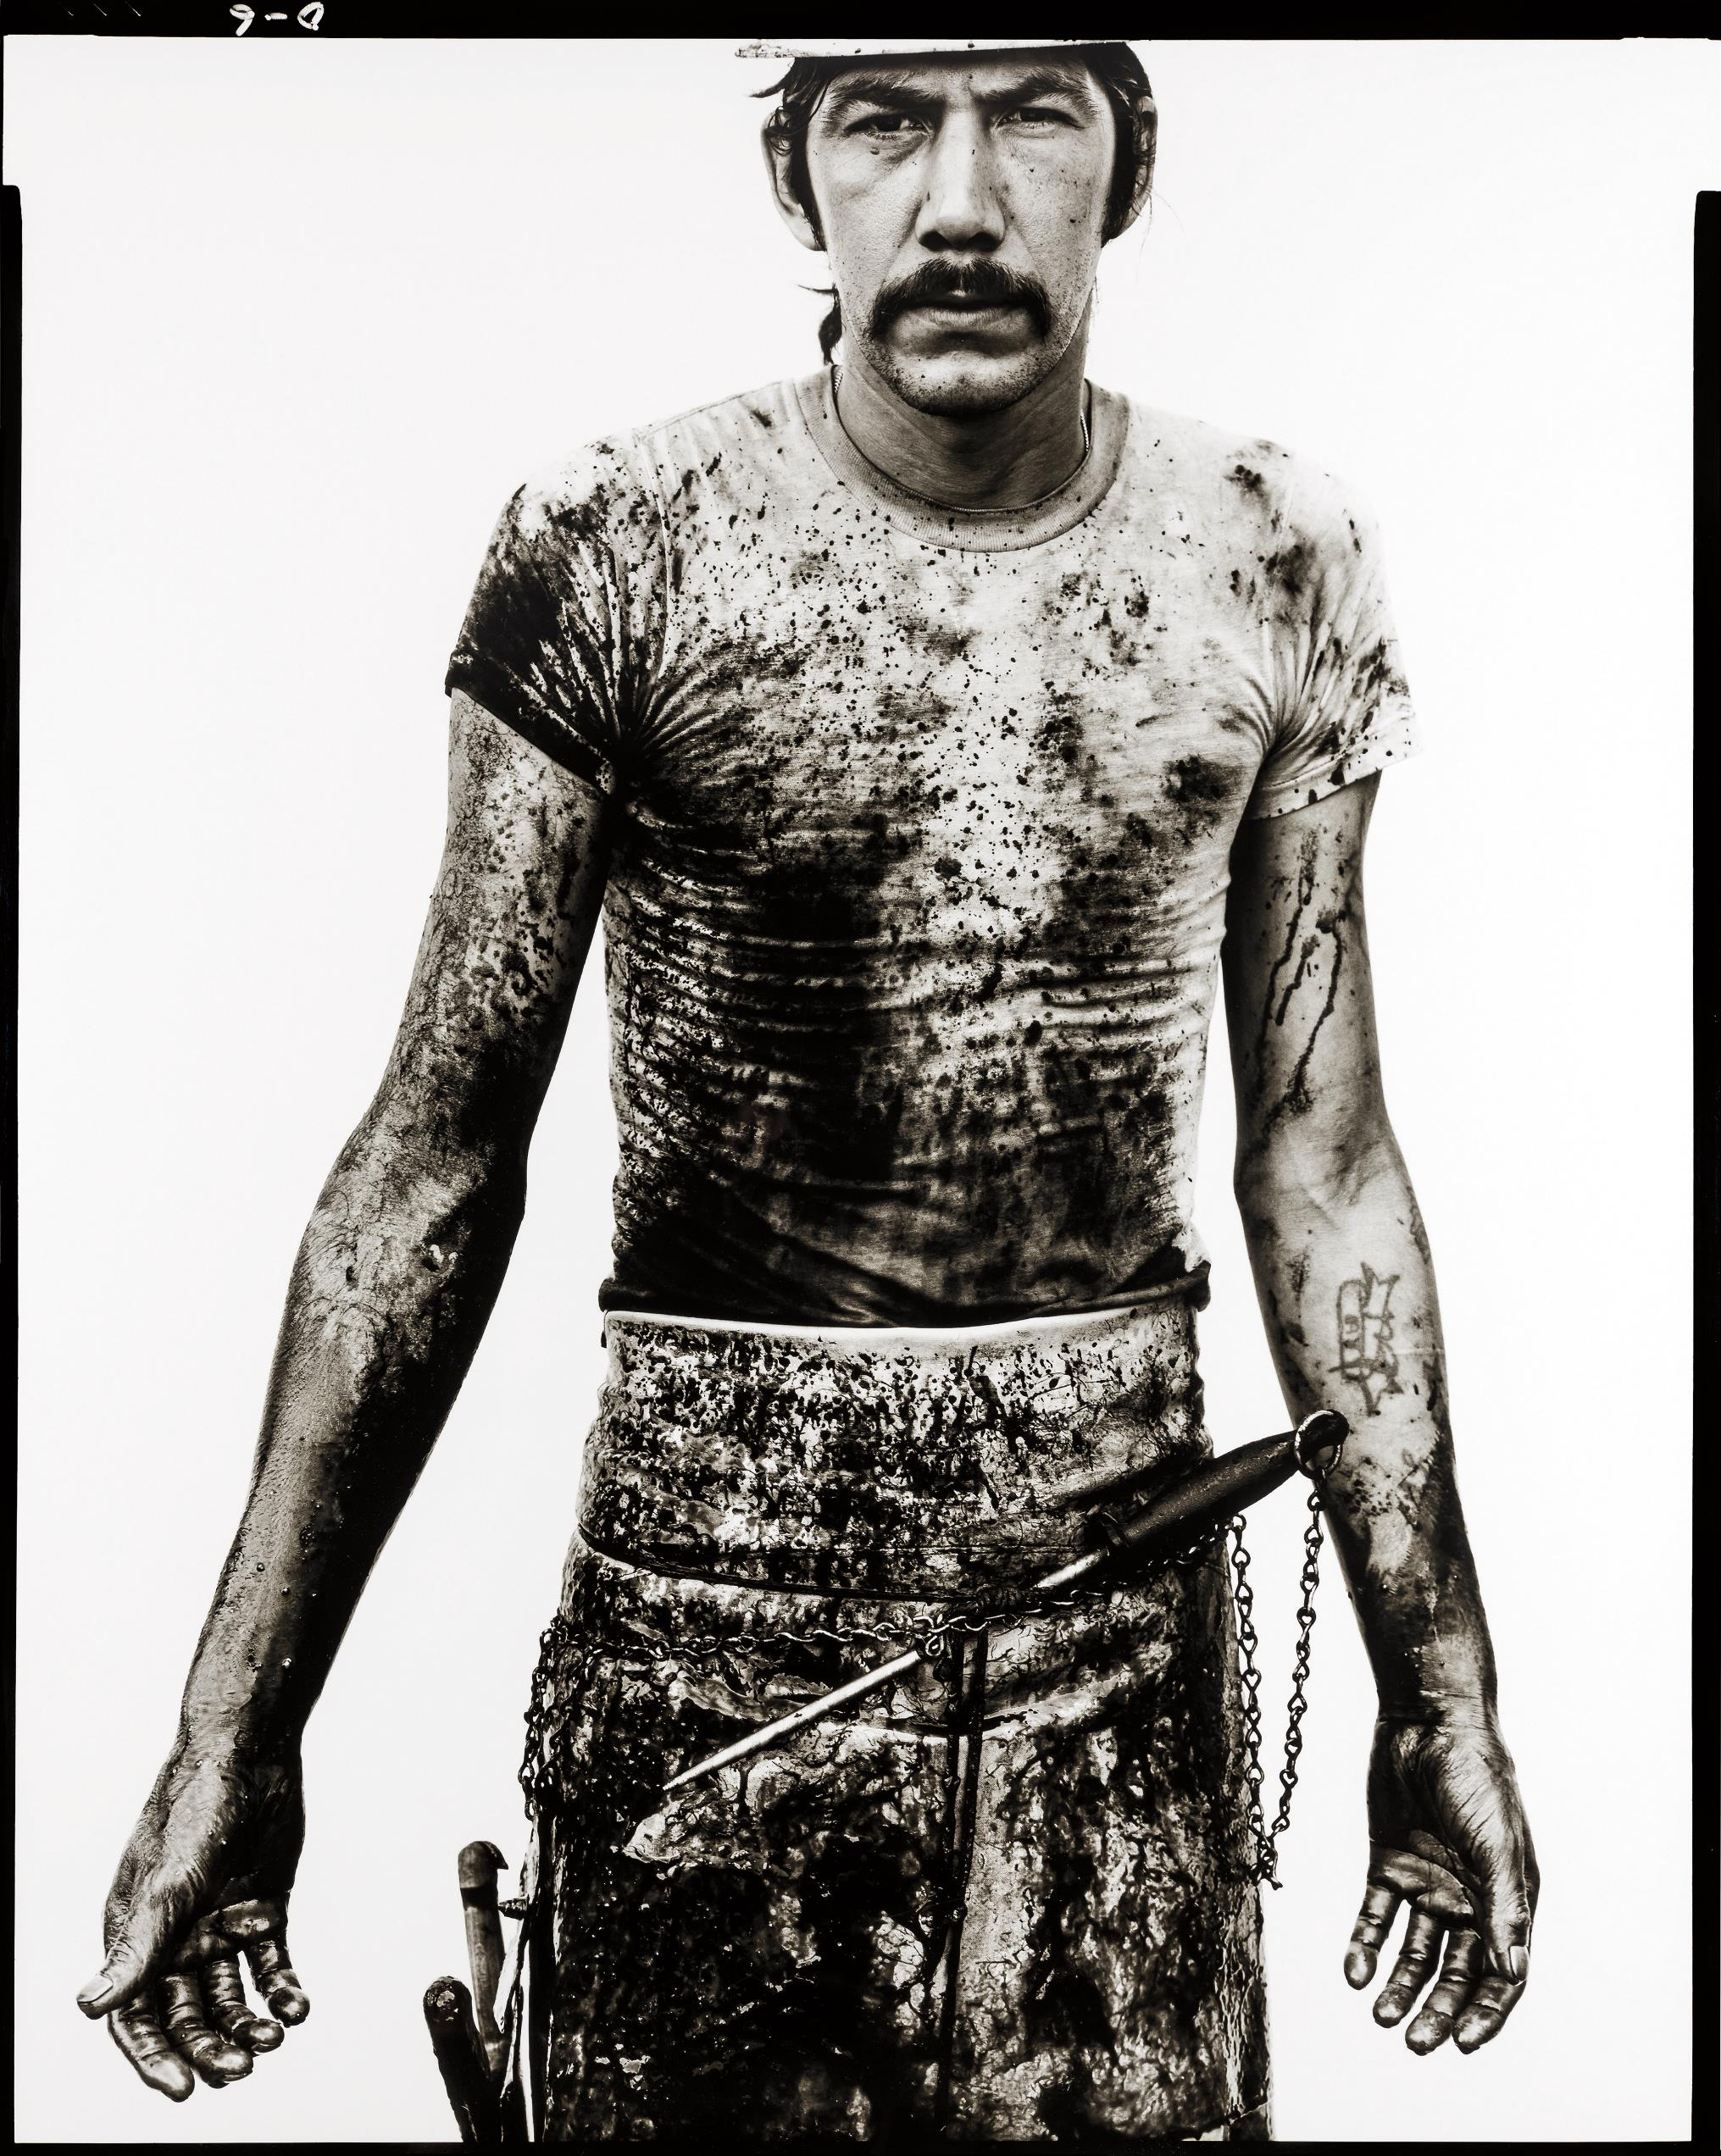 Richard Avedon-Blue Cloud Wright, Slaughterhouse Worker, Omaha, Nebraska, August 10, 1979-1979